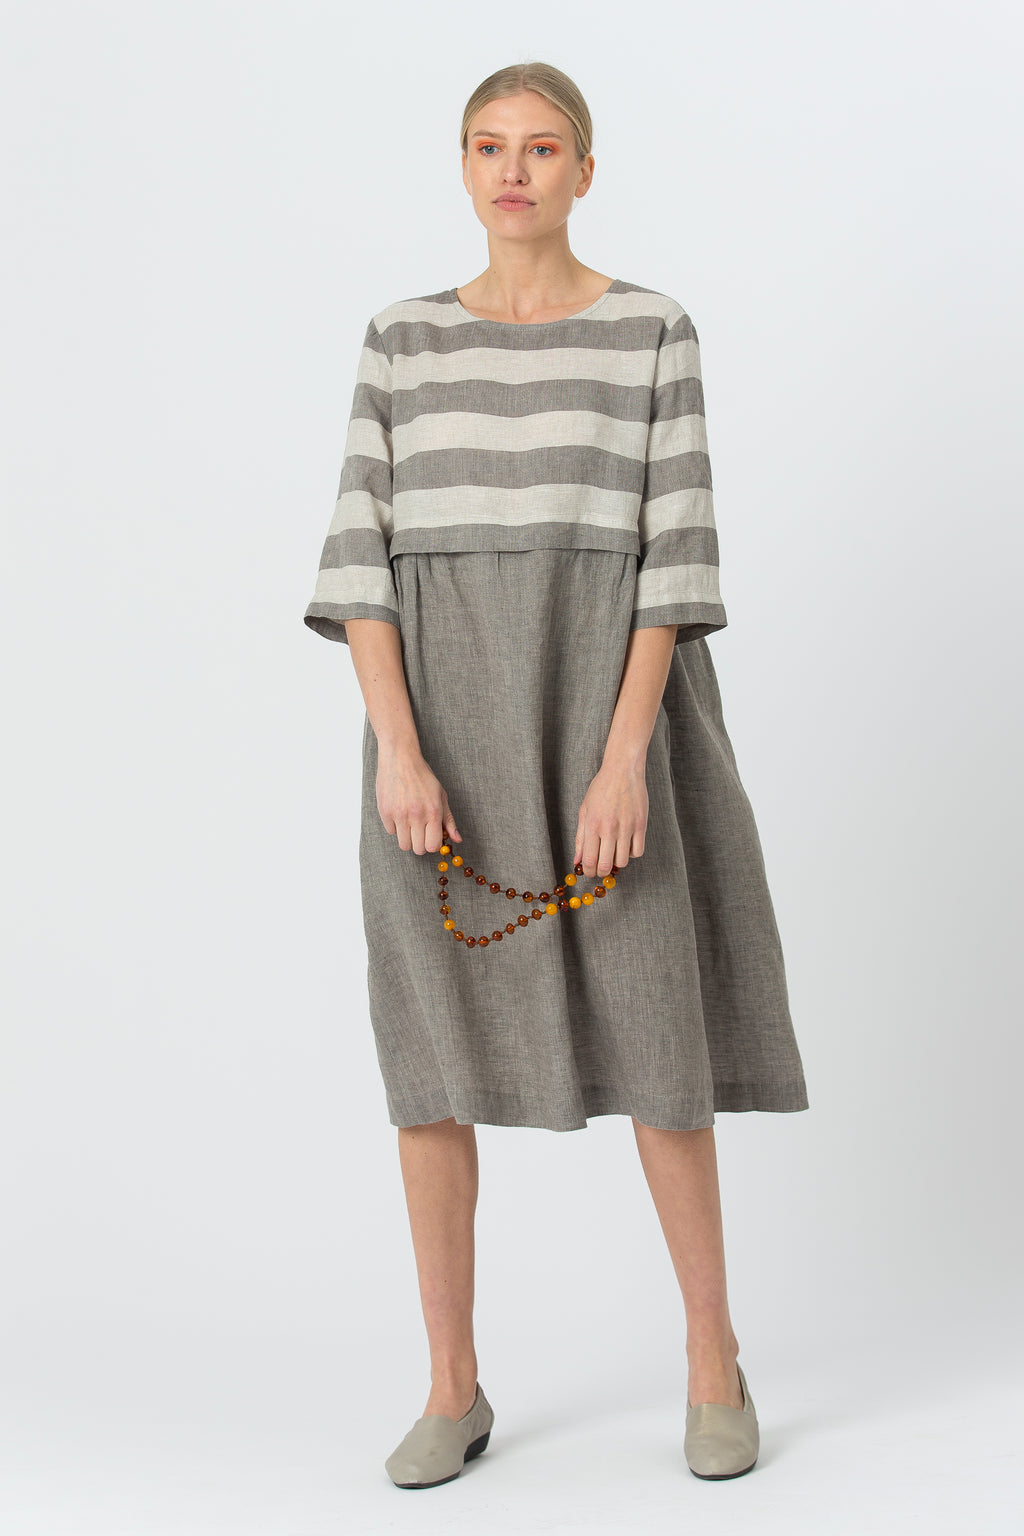 Linen Dress MORTA graphite grey